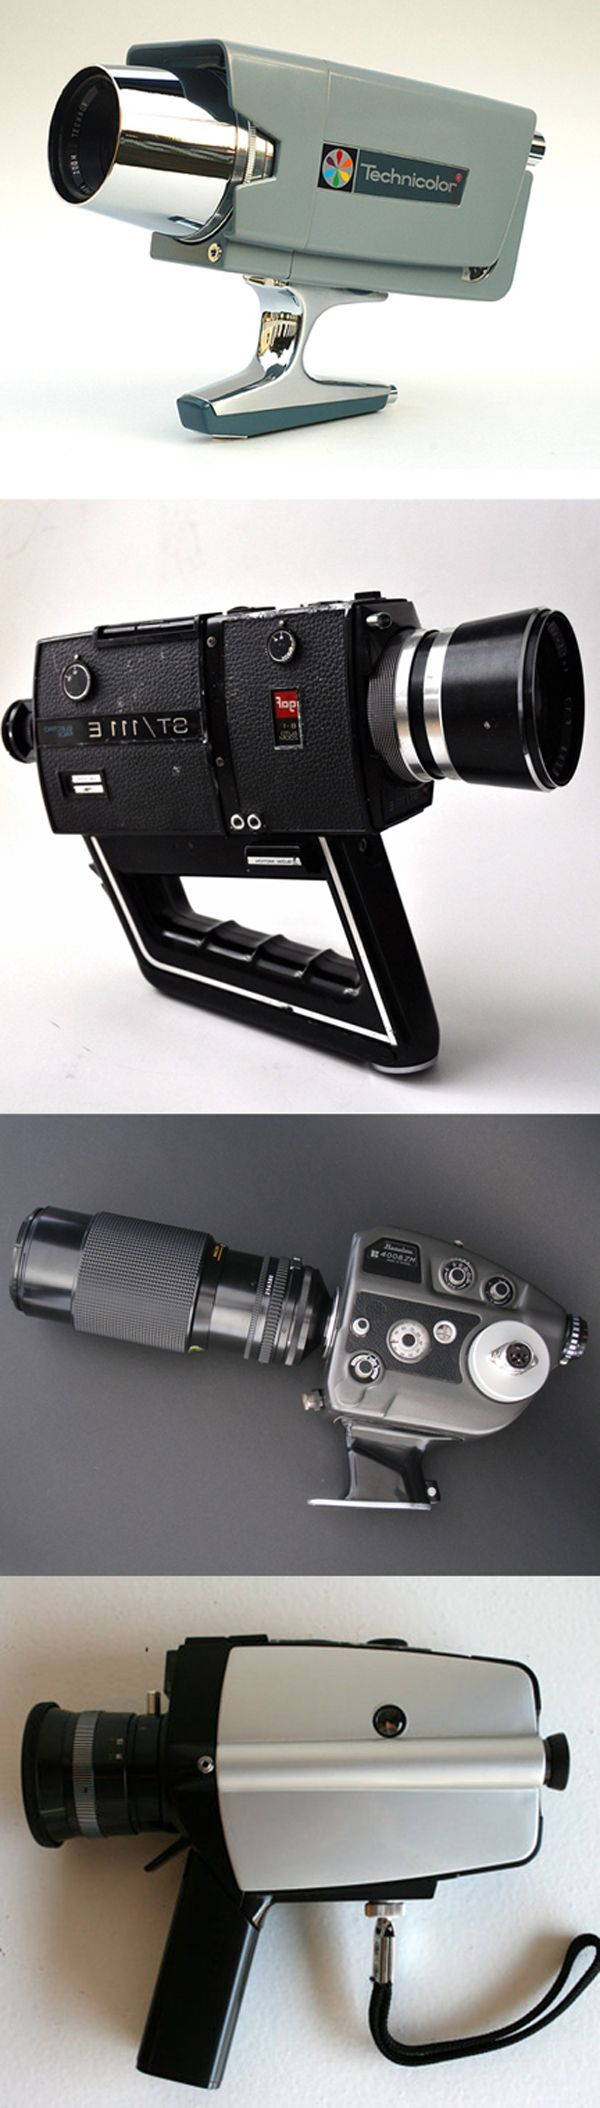 Super 8 Camera ( 1960's / 1970's Technicolor / Chinon Gaf / Beaulieu ( vintage retro camera movie camera / cinema / film camera / super8 mm / motion picture camera )